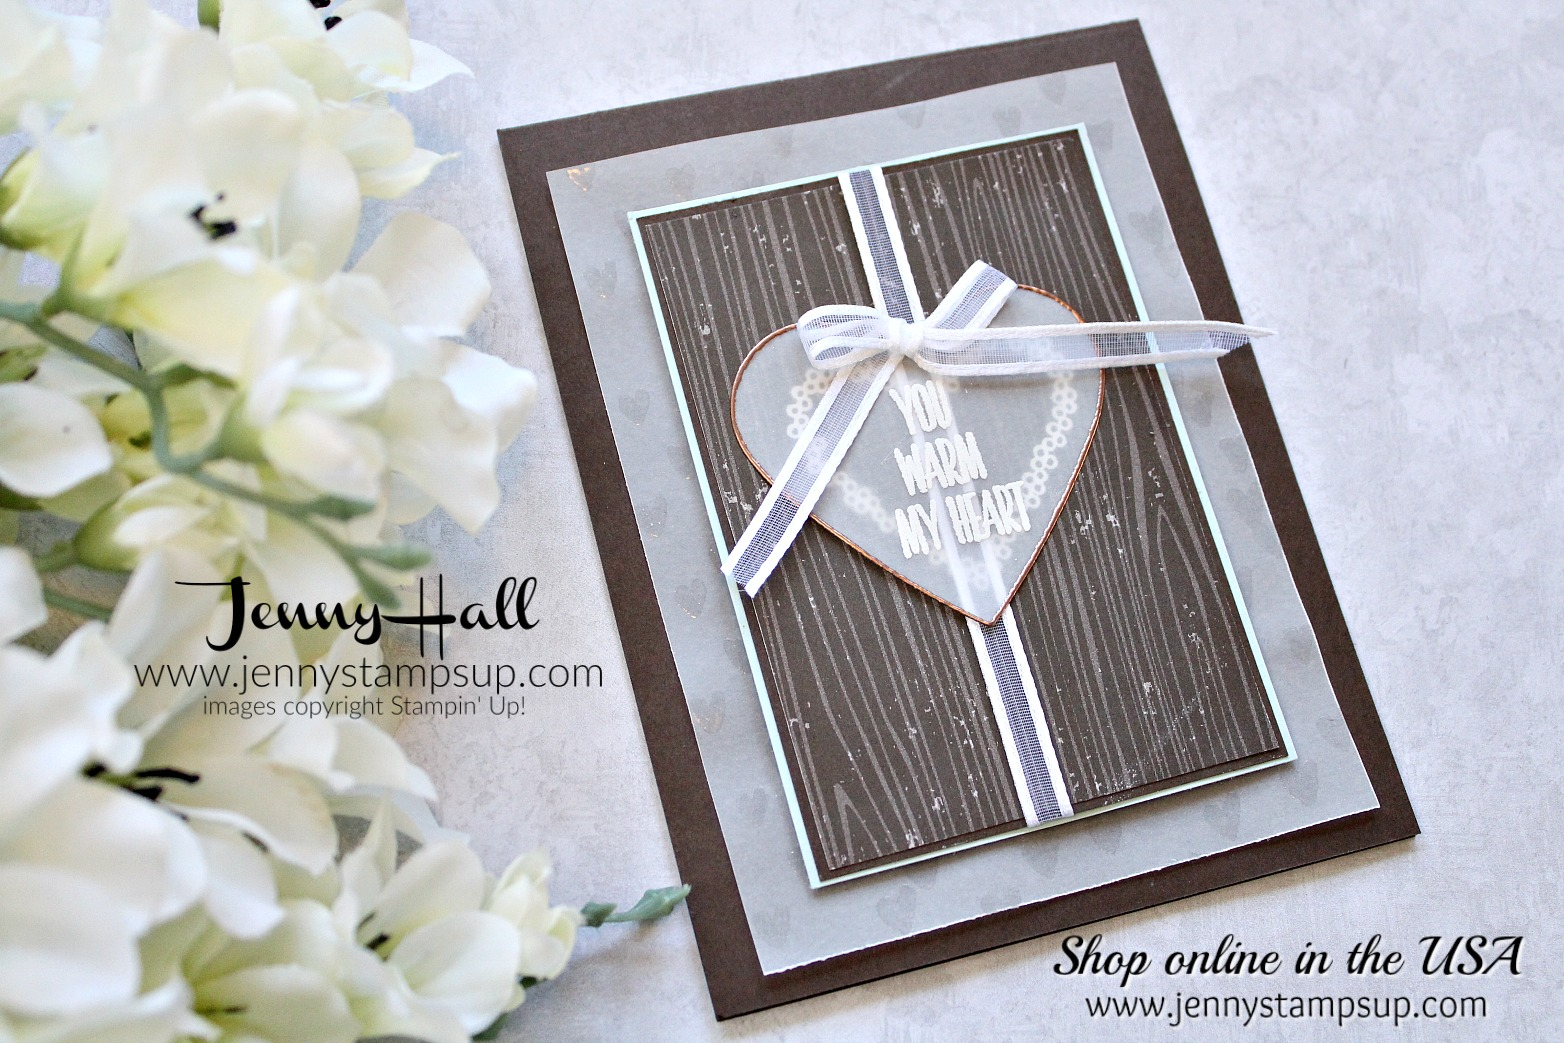 Embossed Vellum card by Jenny Hall at www.jennystampsup.com for #stampinkpaperchallenge #cardmaingchallenge #cardmaking #stampinup #stamping #jennystampsup #jennyhallstampinup #jennyhalldesign #hearthappiness #lovelywishes #paperembossing #vellum #videotutorials #cardmakingvideo #scrapbooking and more!